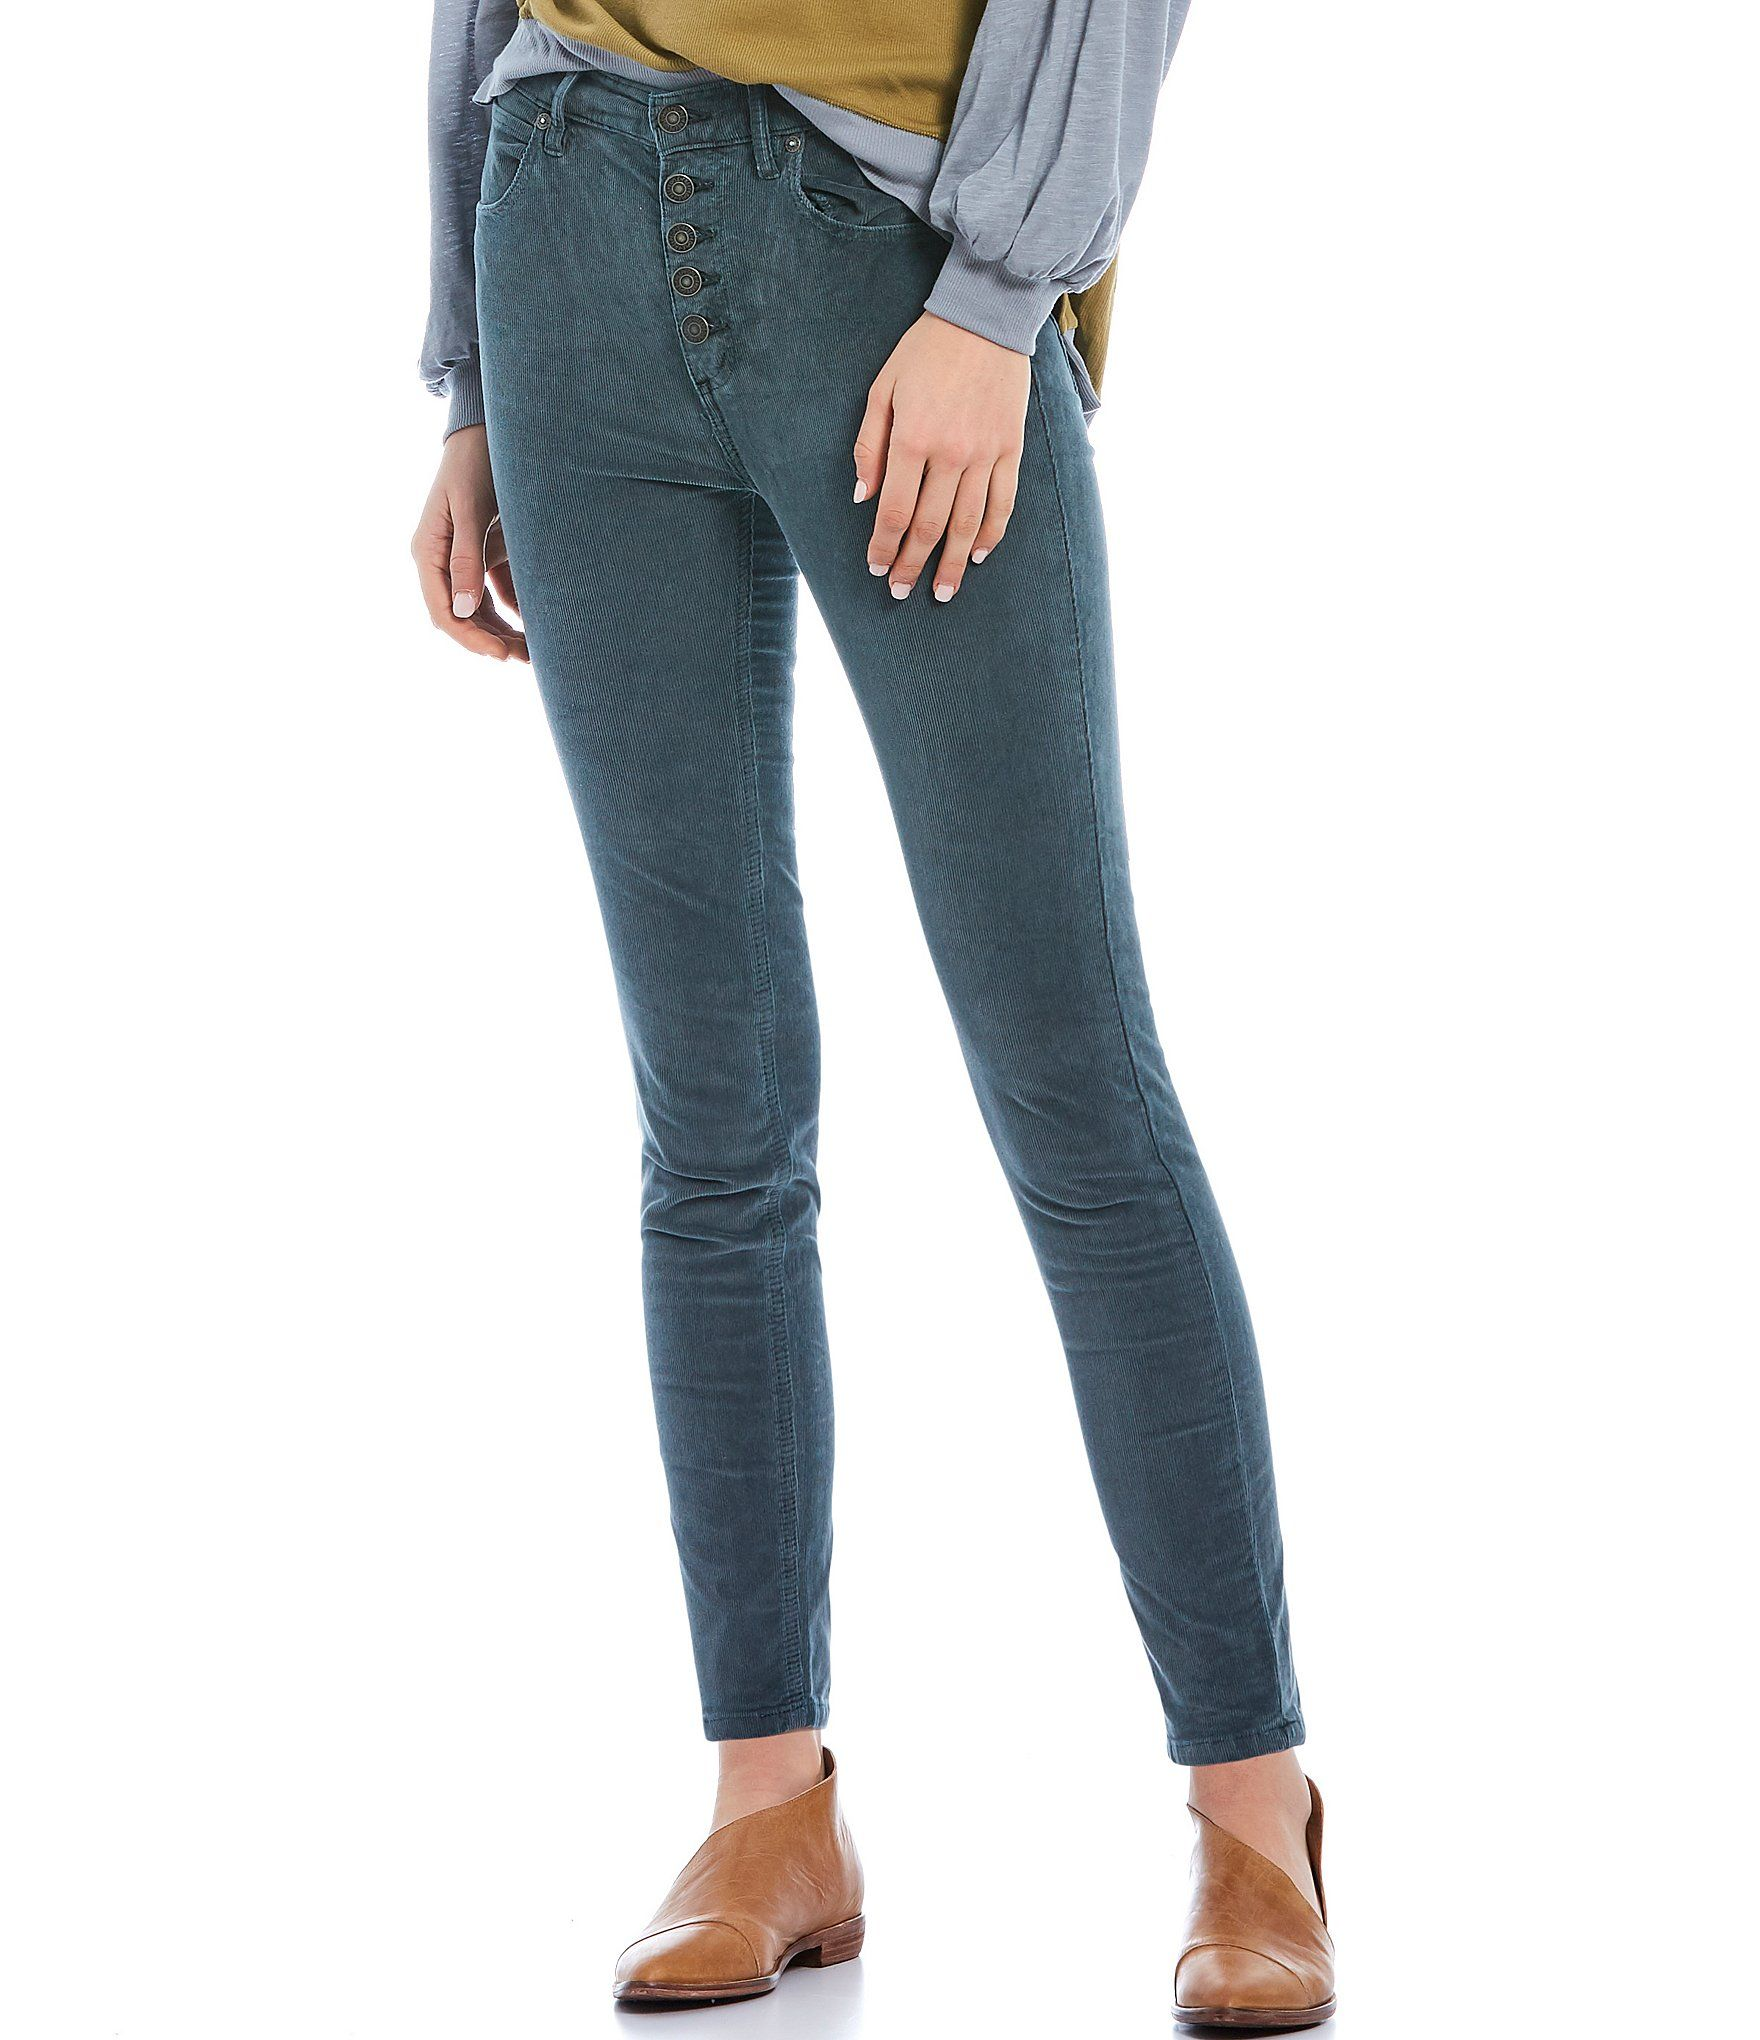 30+ Free People Navy Corduroy Pants Pictures